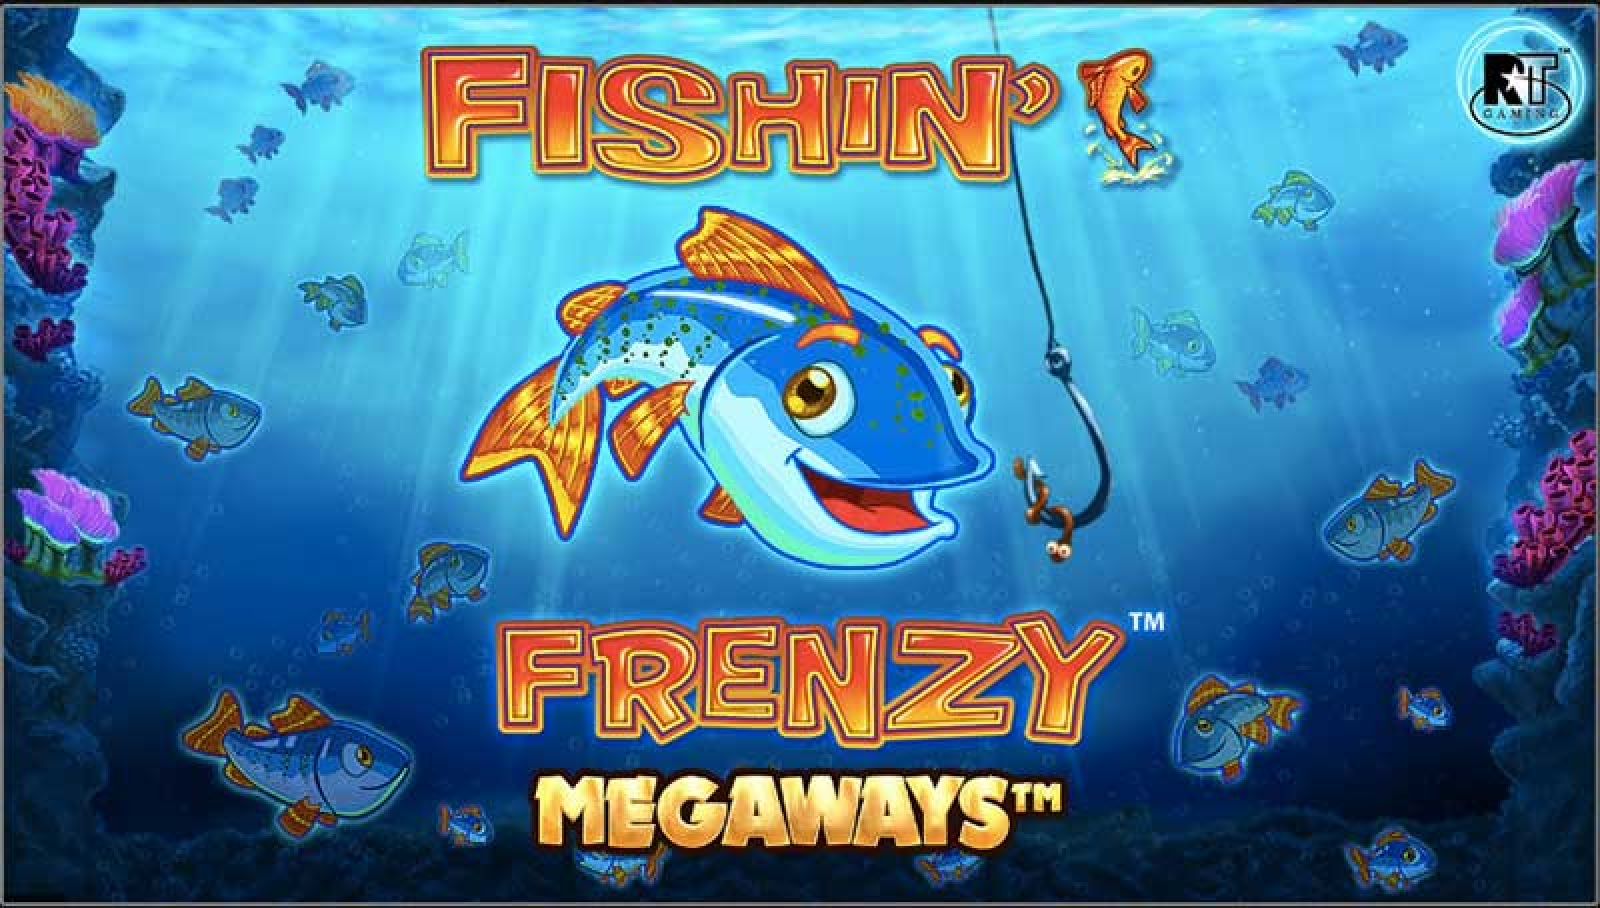 The Fishin' Frenzy Megaways Online Slot Demo Game by Blueprint Gaming